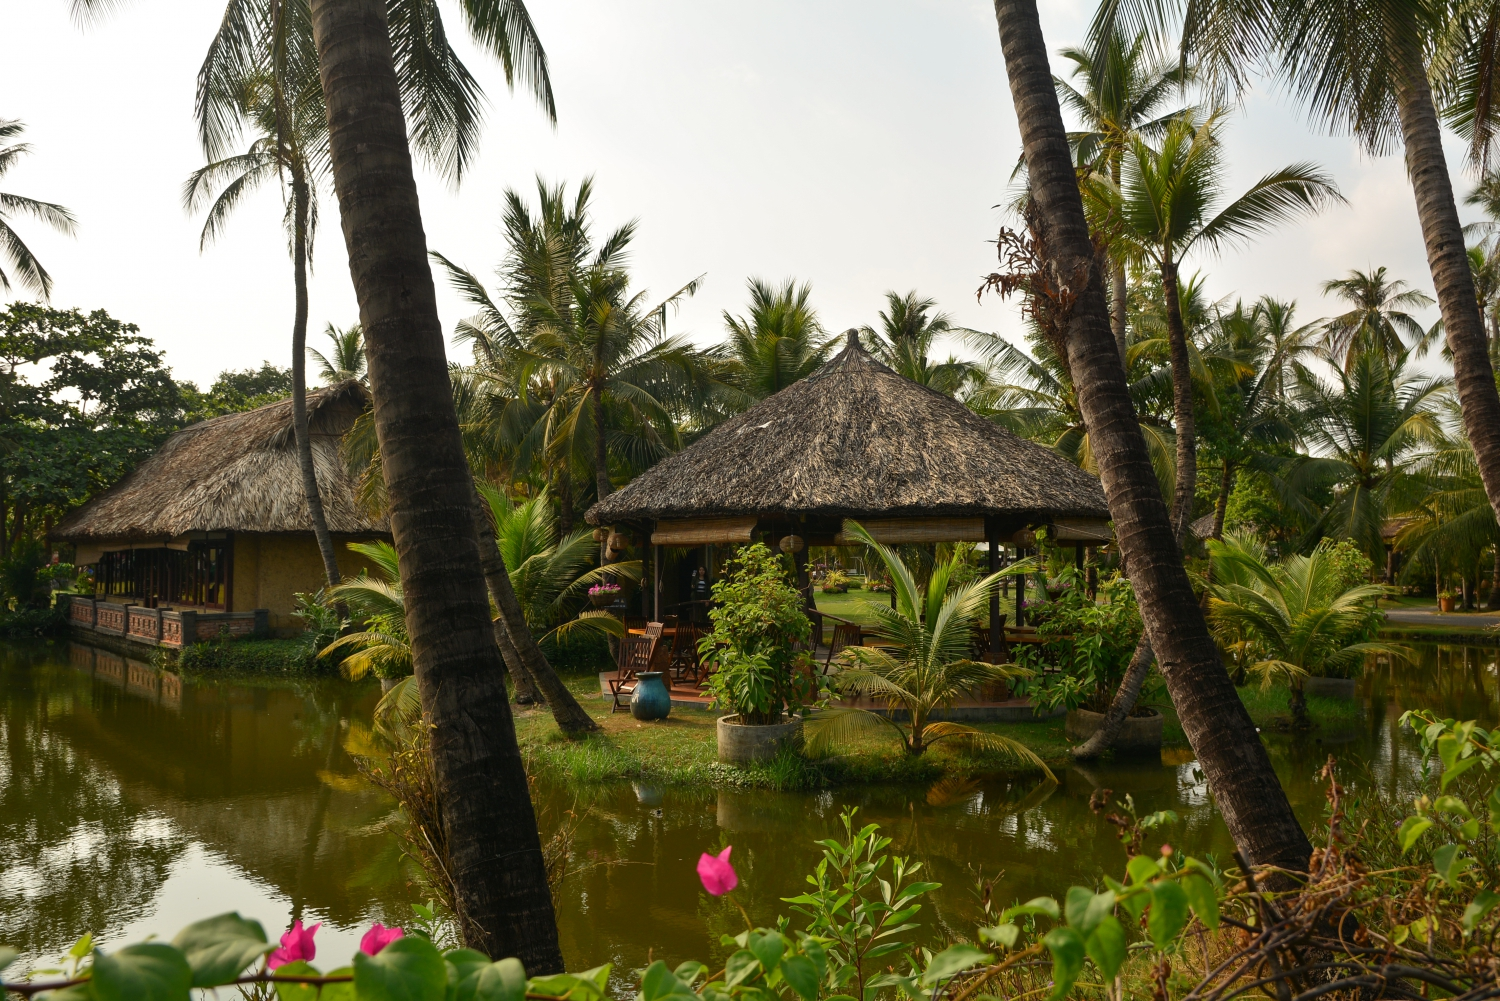 Thanh Da' tourist villages are a bit better known to the older generation